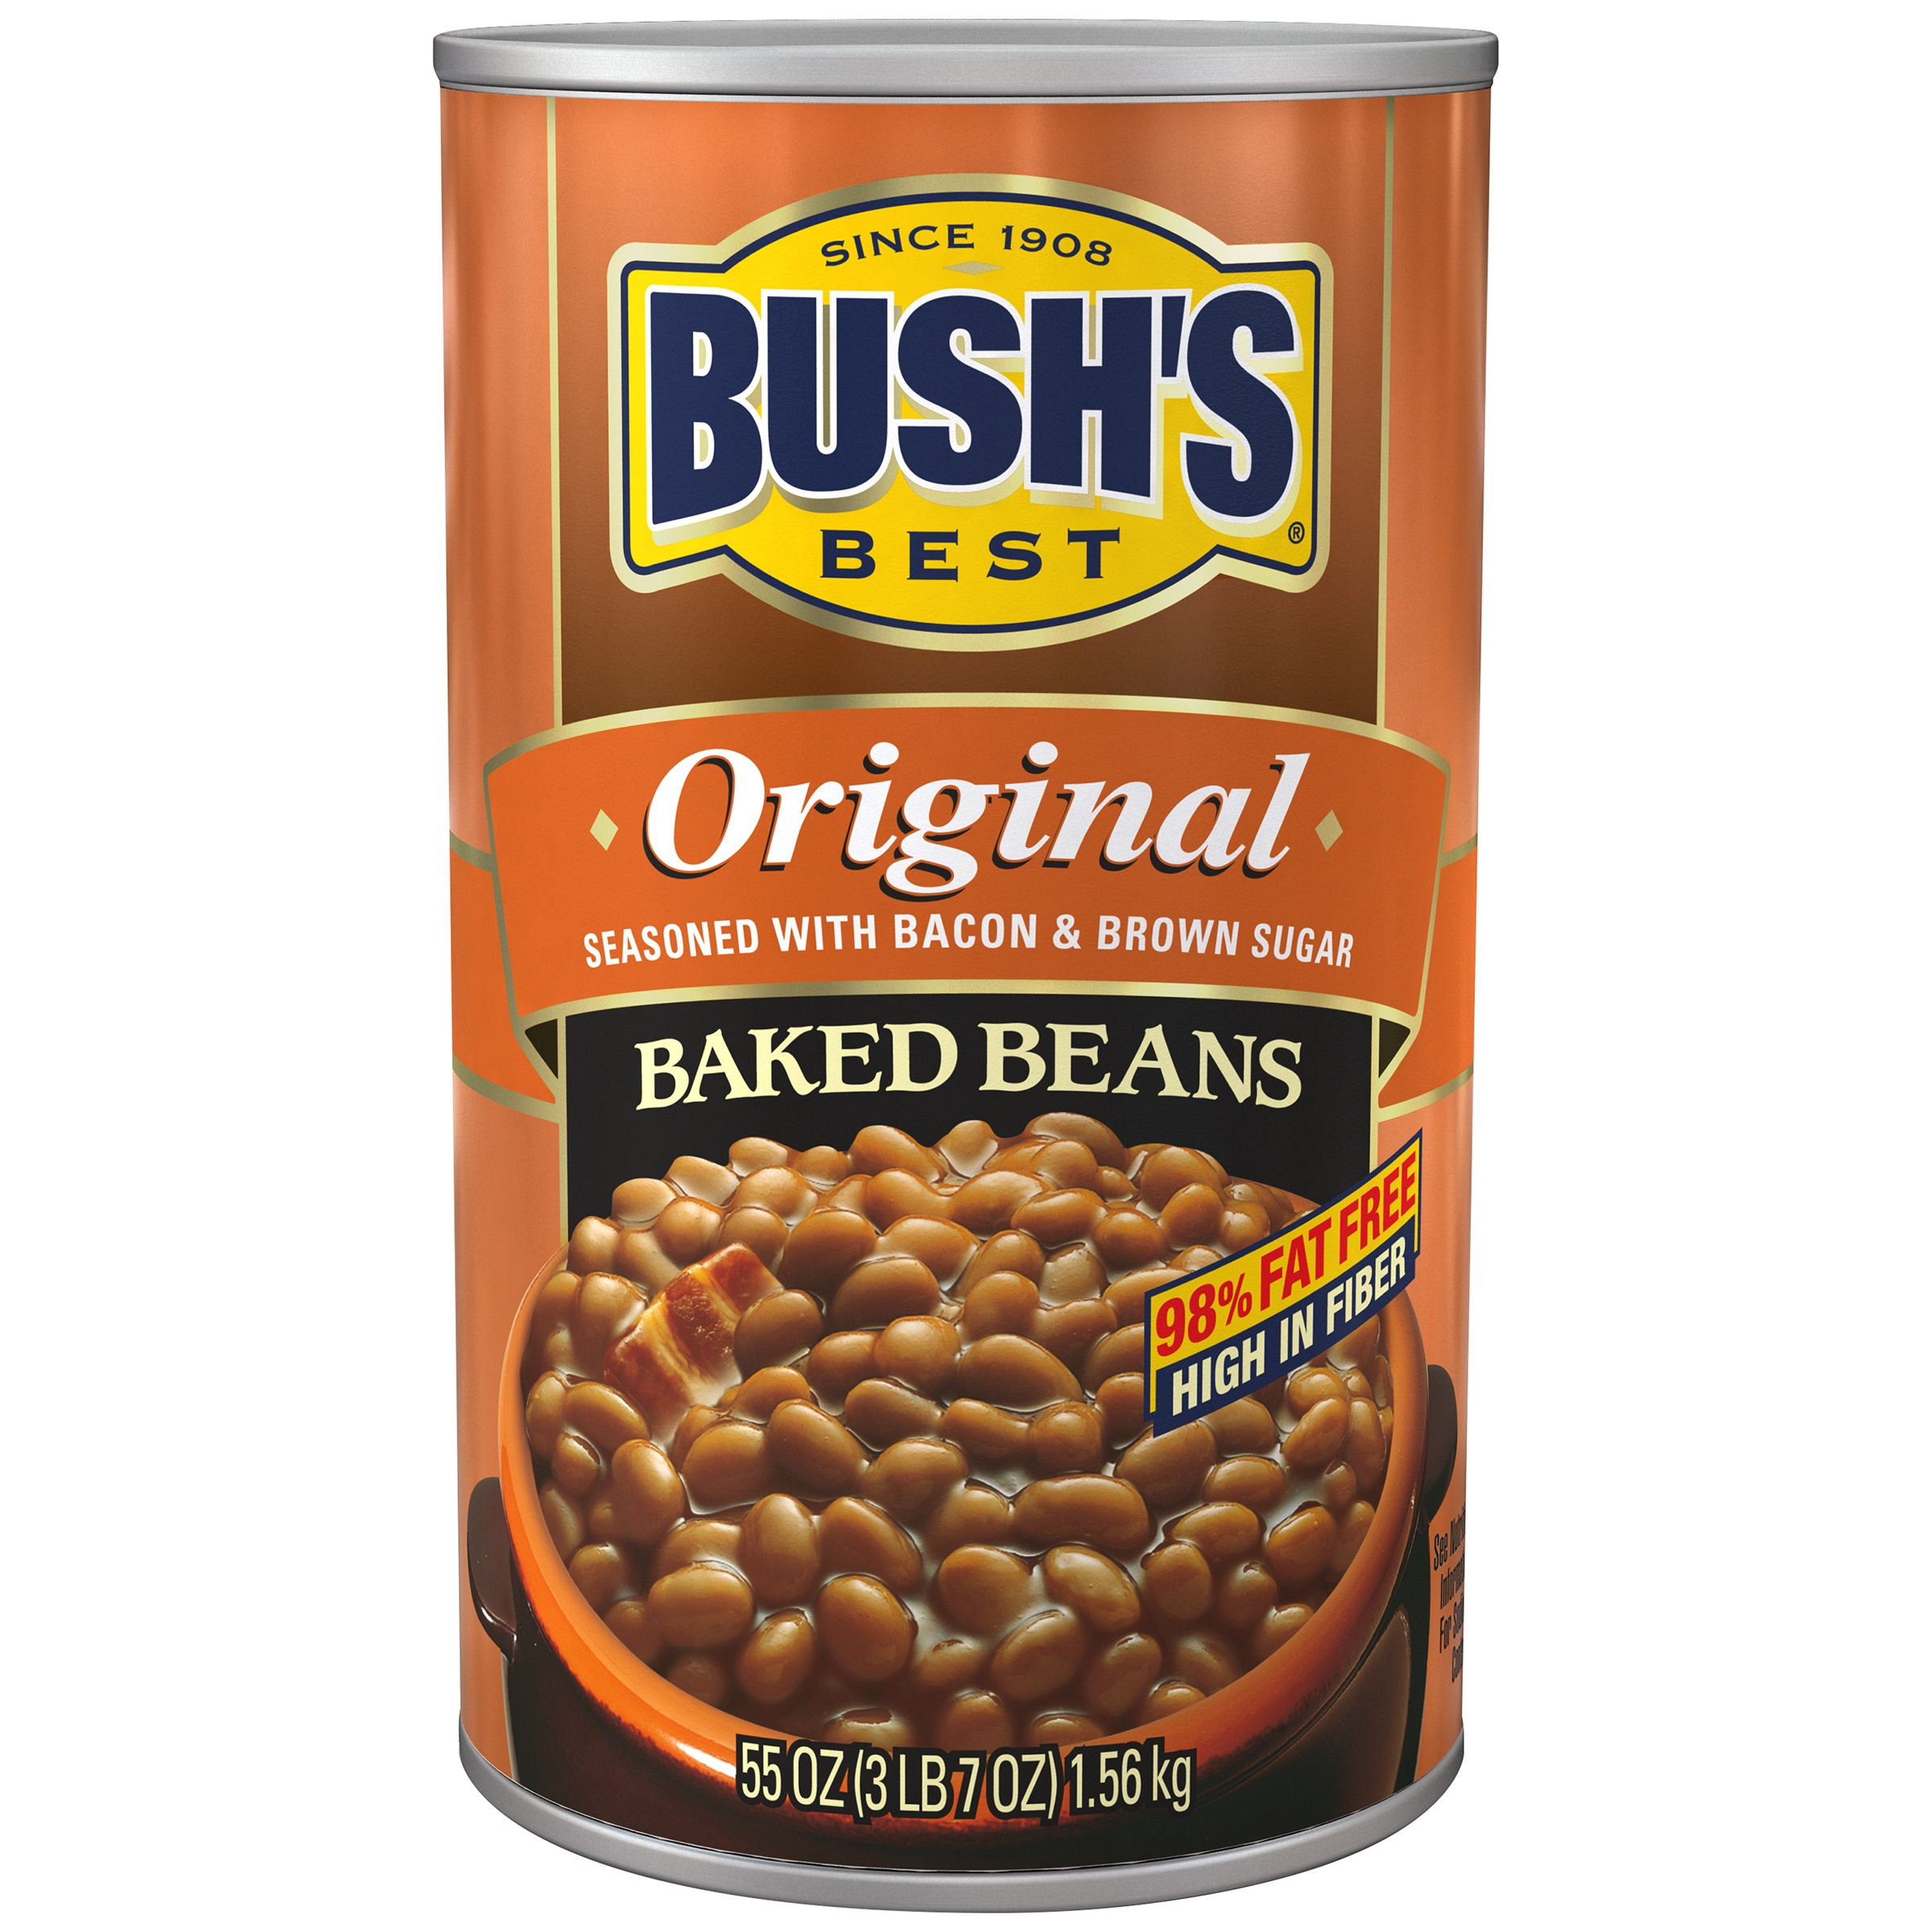 Bushs Best Original Seasoned Baked Beans With Bacon And Brown Sugar, 55 oz